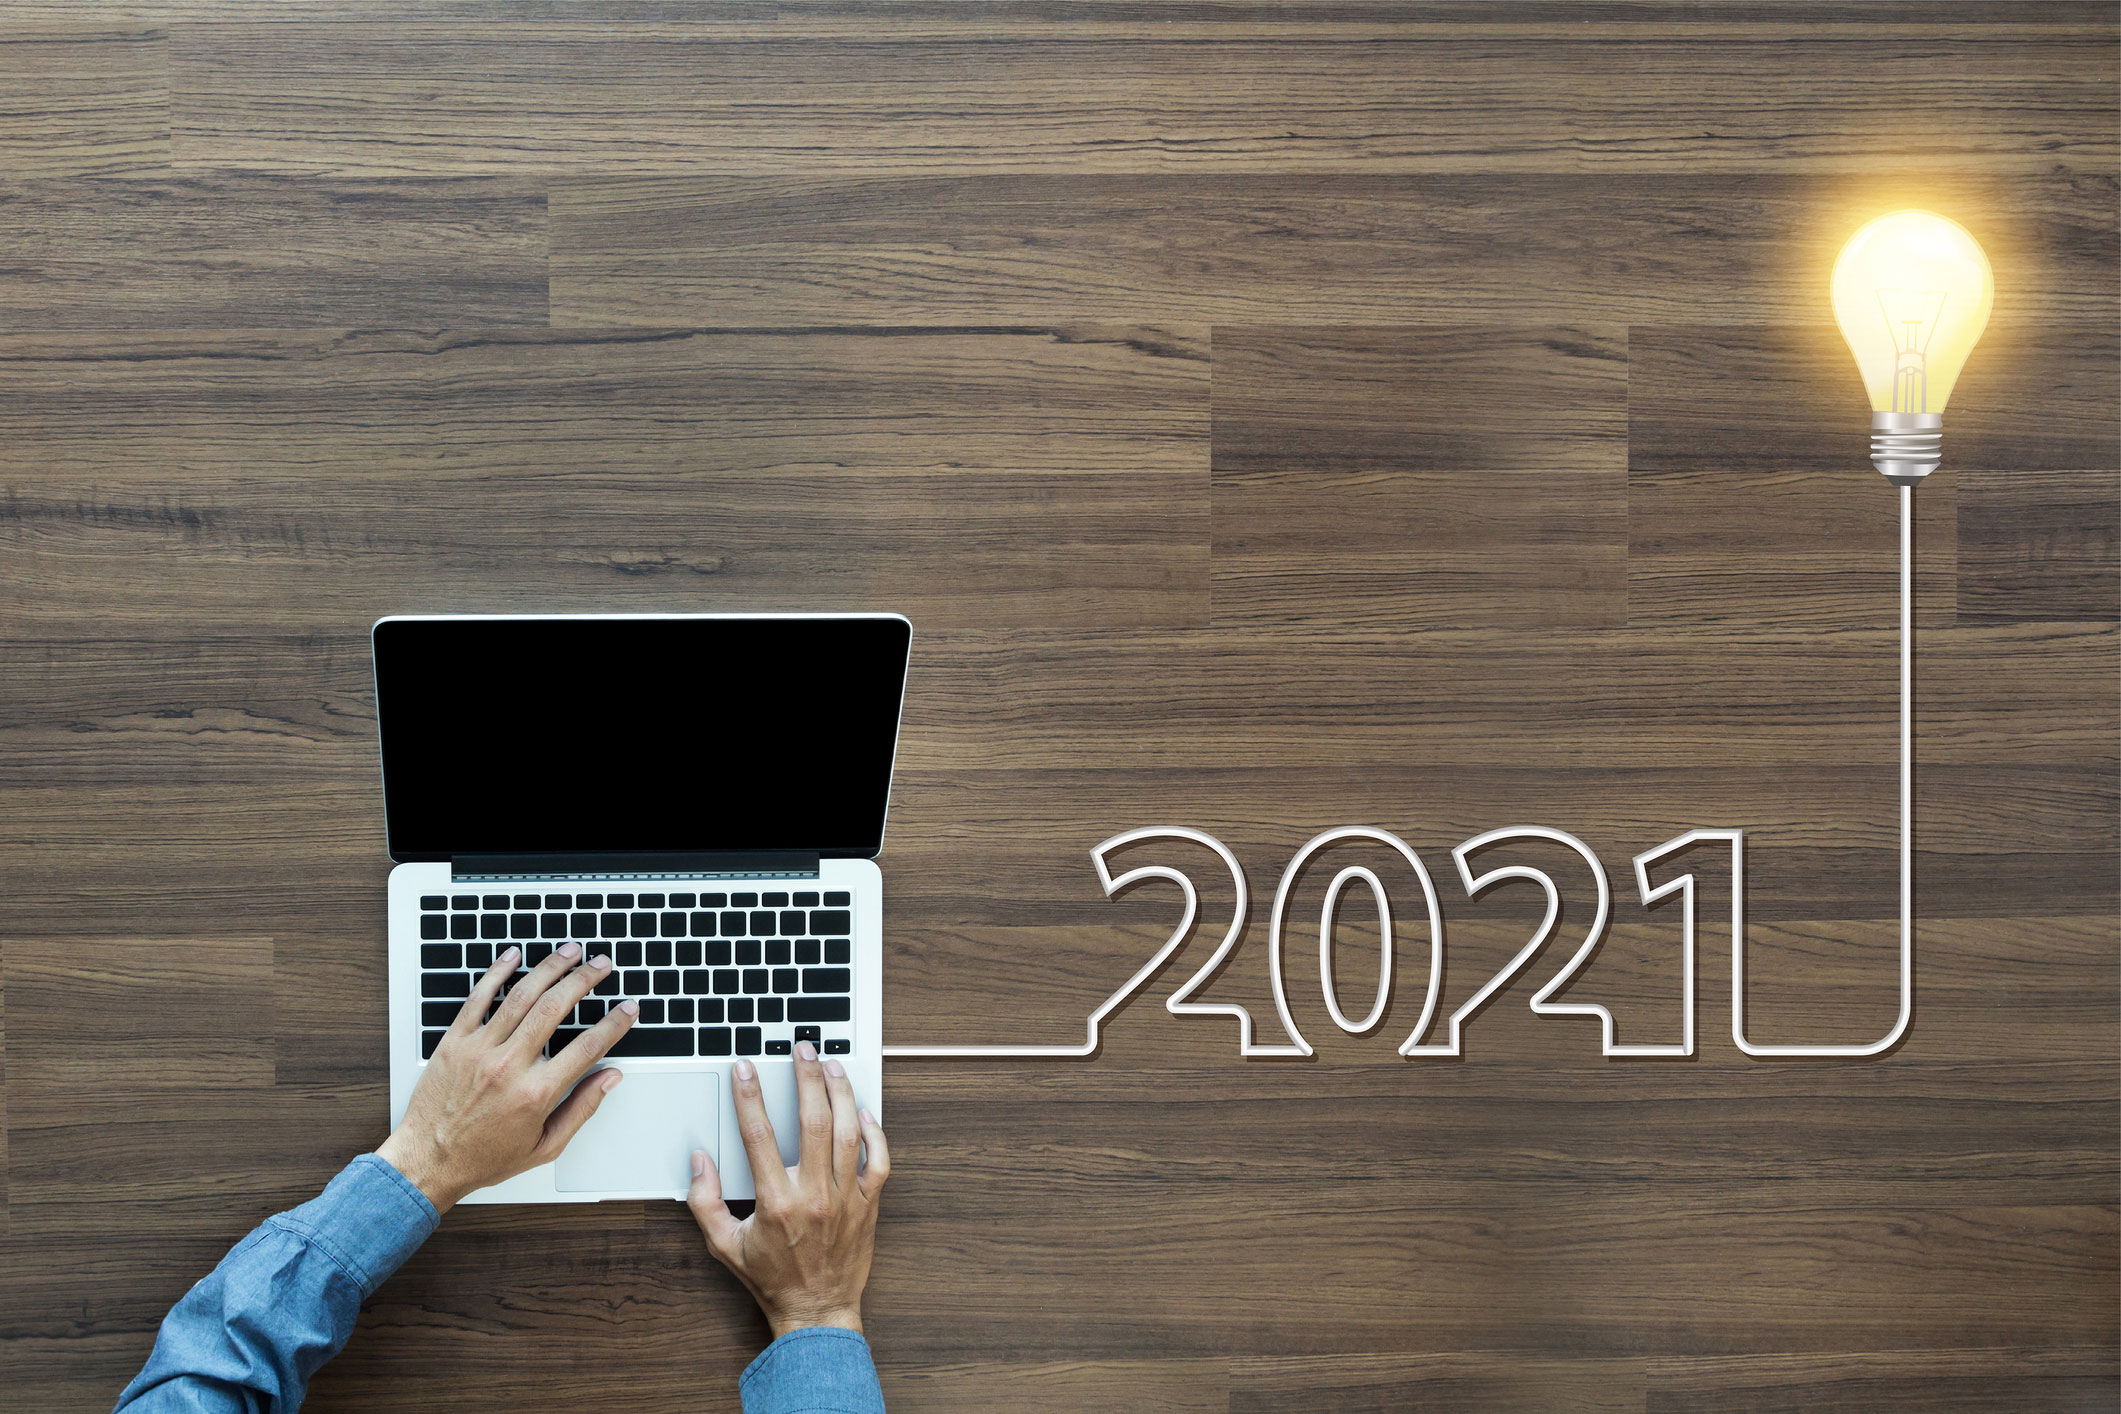 3 Emerging Technology Trends In 2021 Your Business Should Be Embracing…